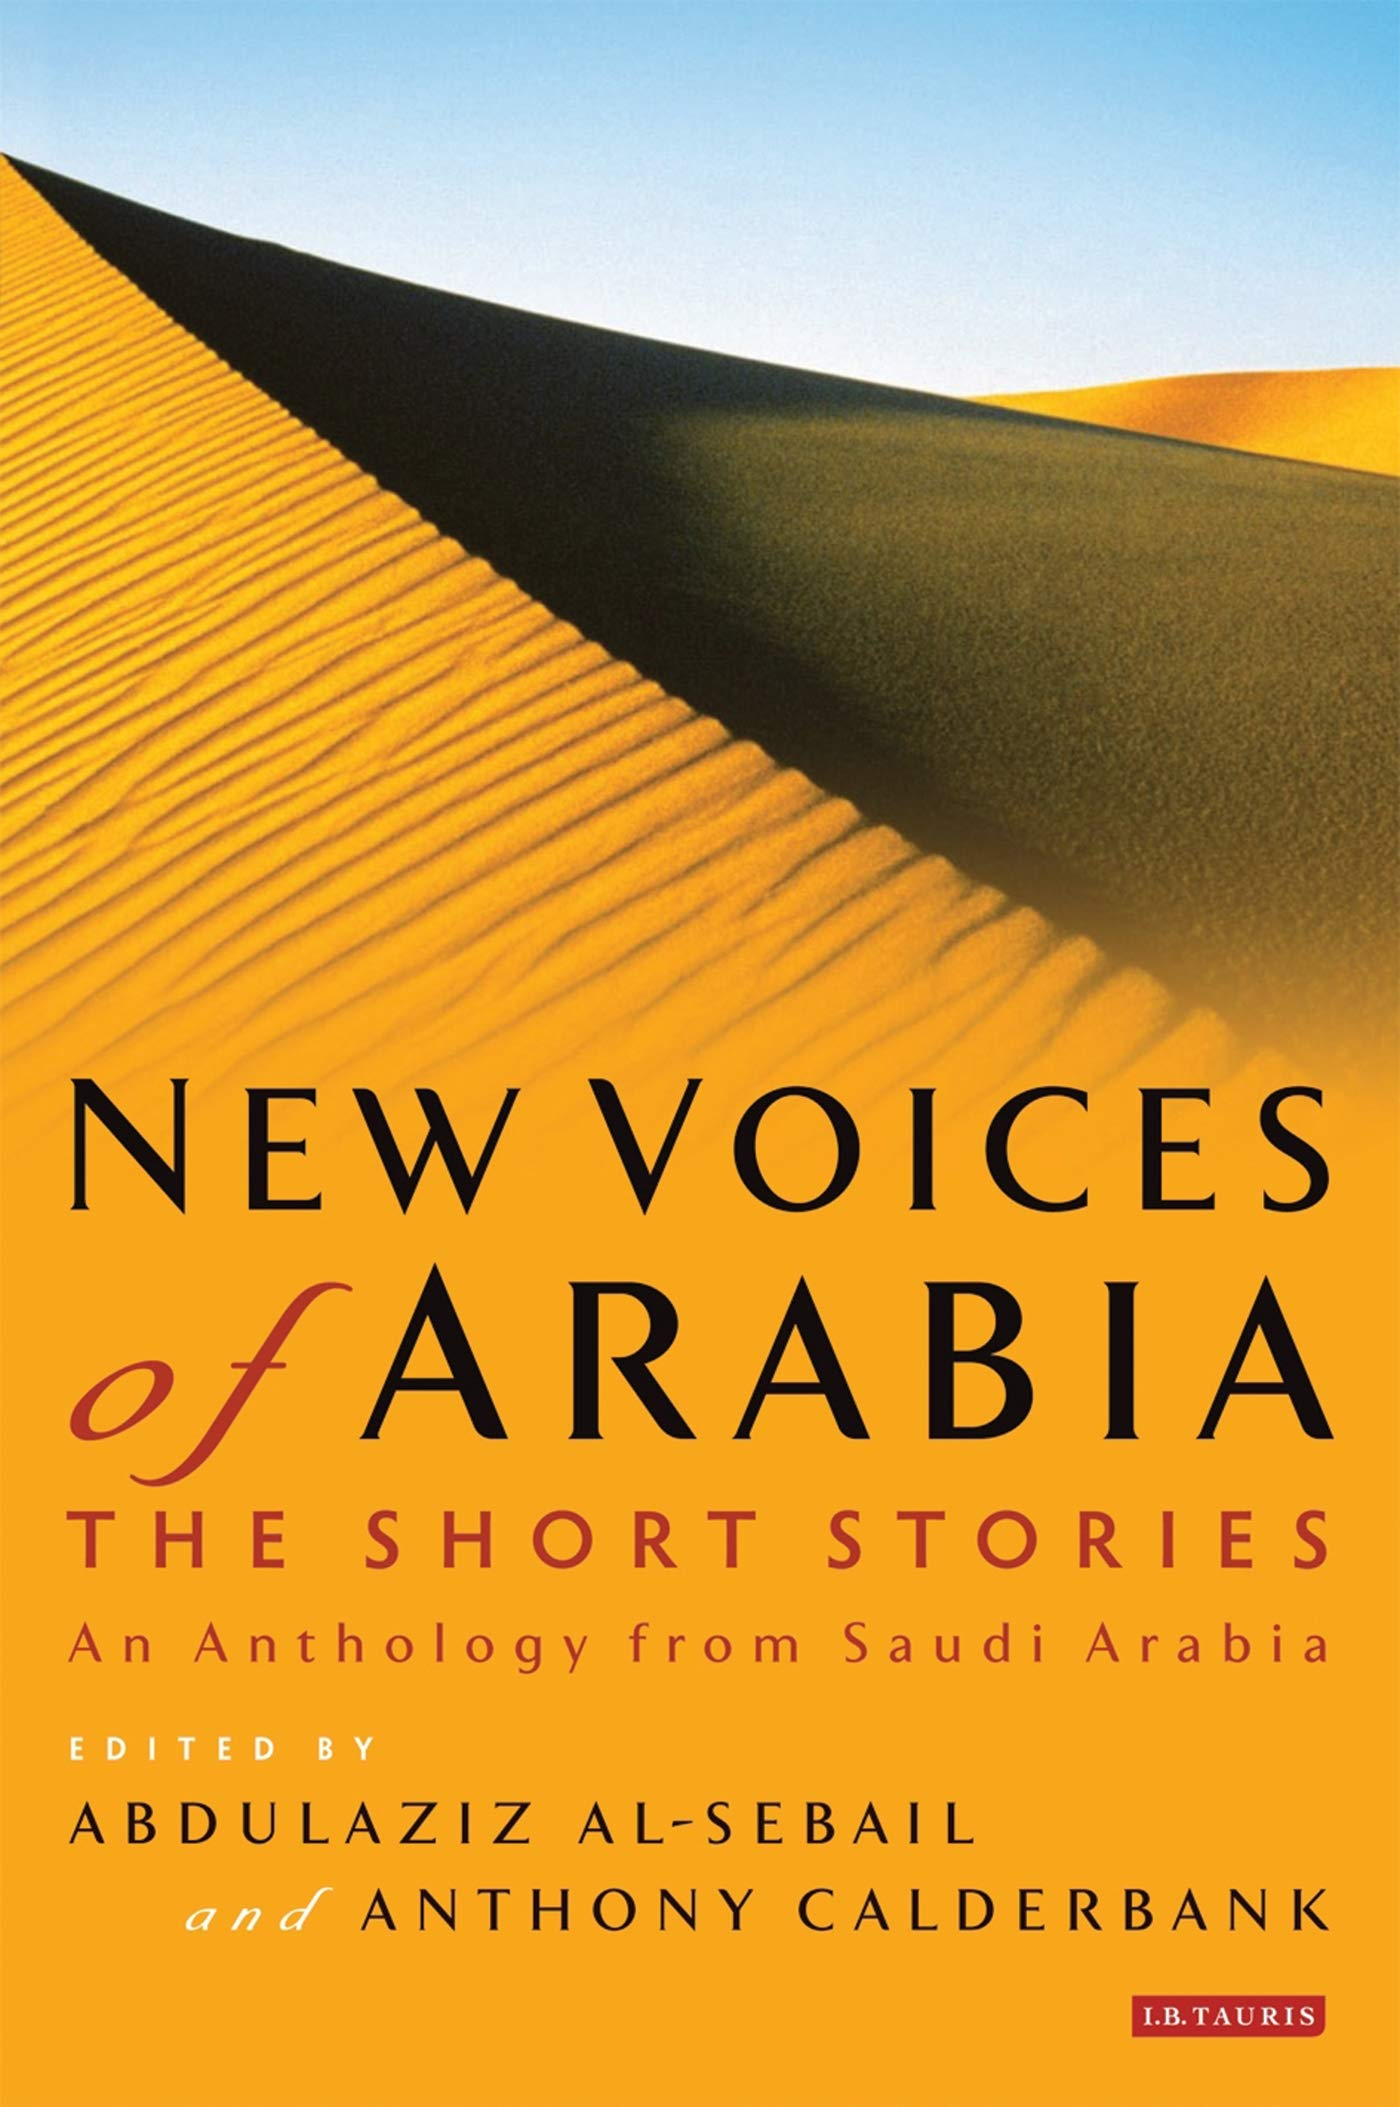 New Voices of Arabia: The Short Stories: An Anthology from Saudi Arabia